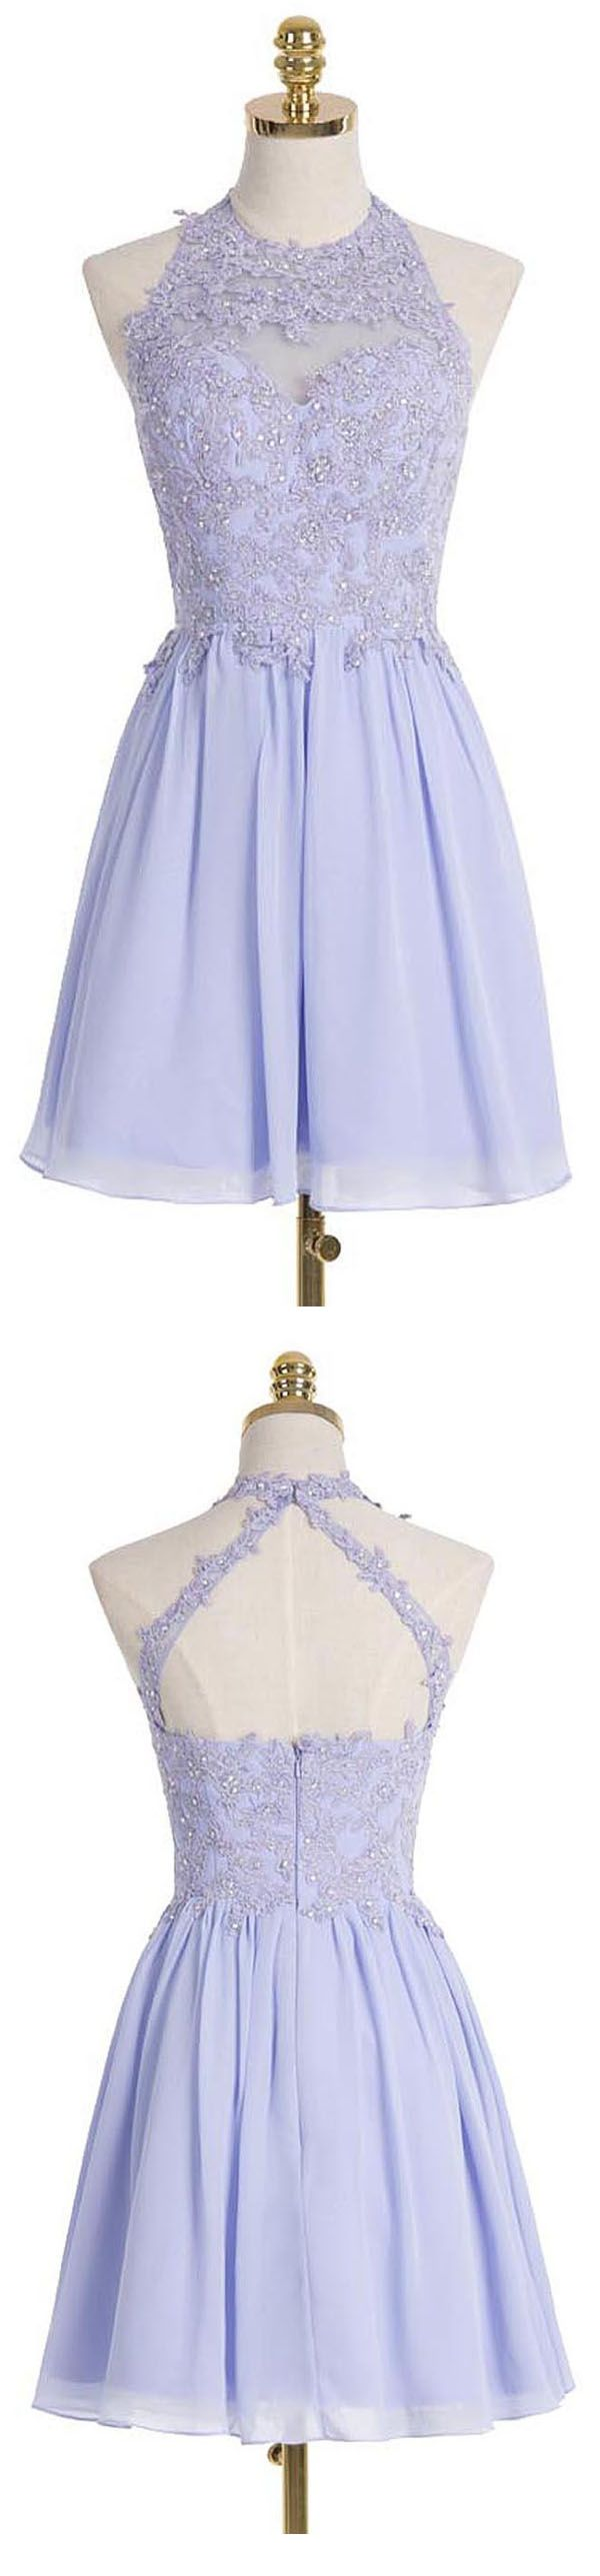 A-line Halter Short Lilac Chiffon Homecoming Dress with Appliques Crystal